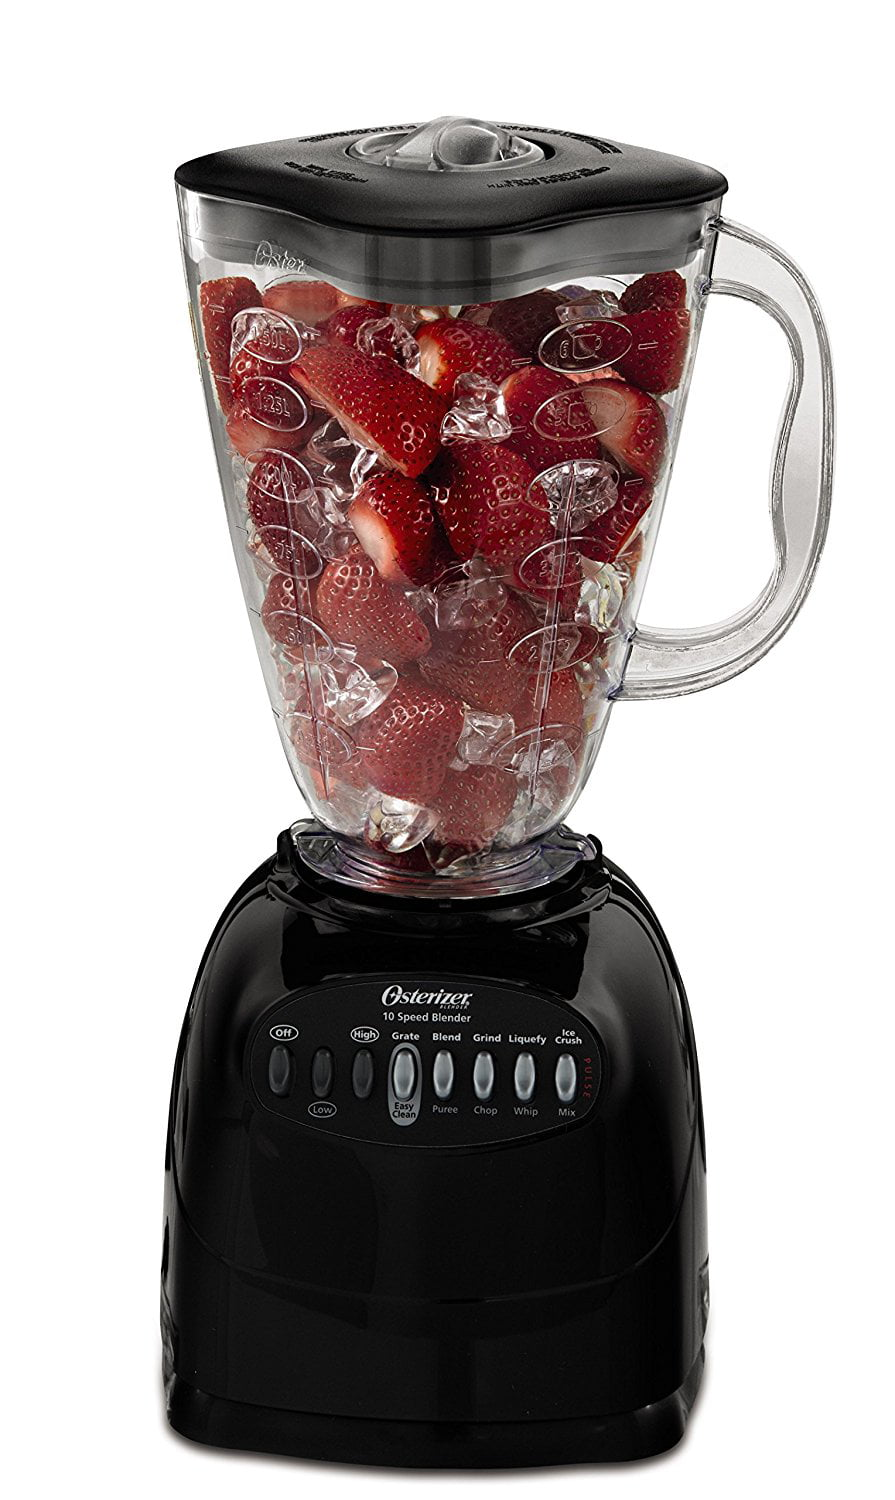 Oster Blender 6 Cup Capacity 10 Speed Black